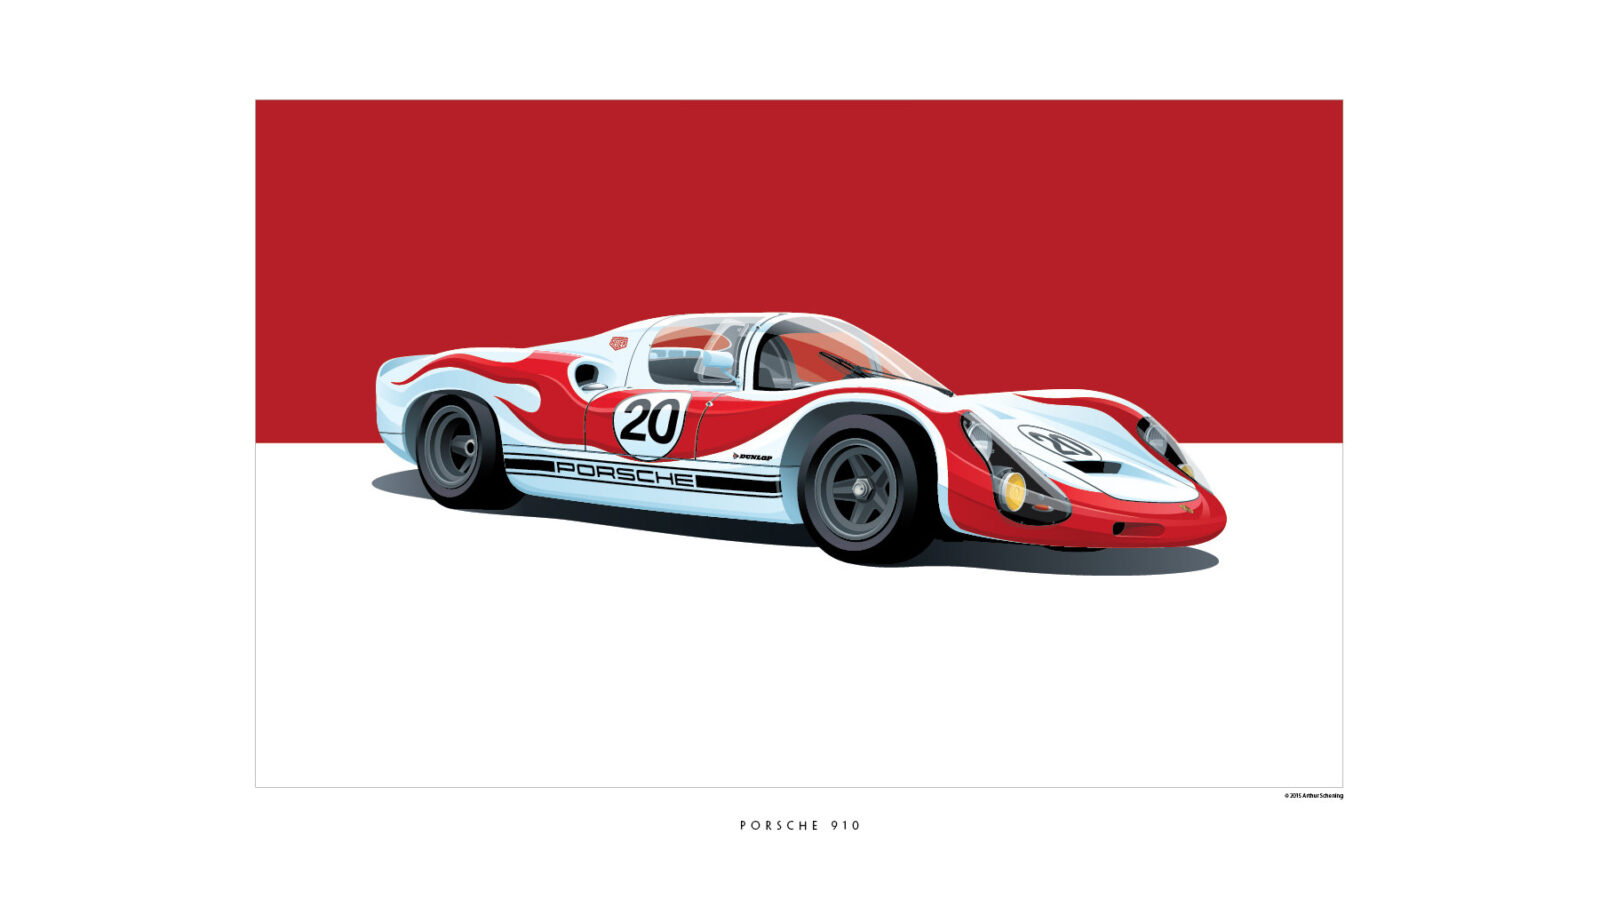 Iconic Racing Car Posters By Arthur Schening